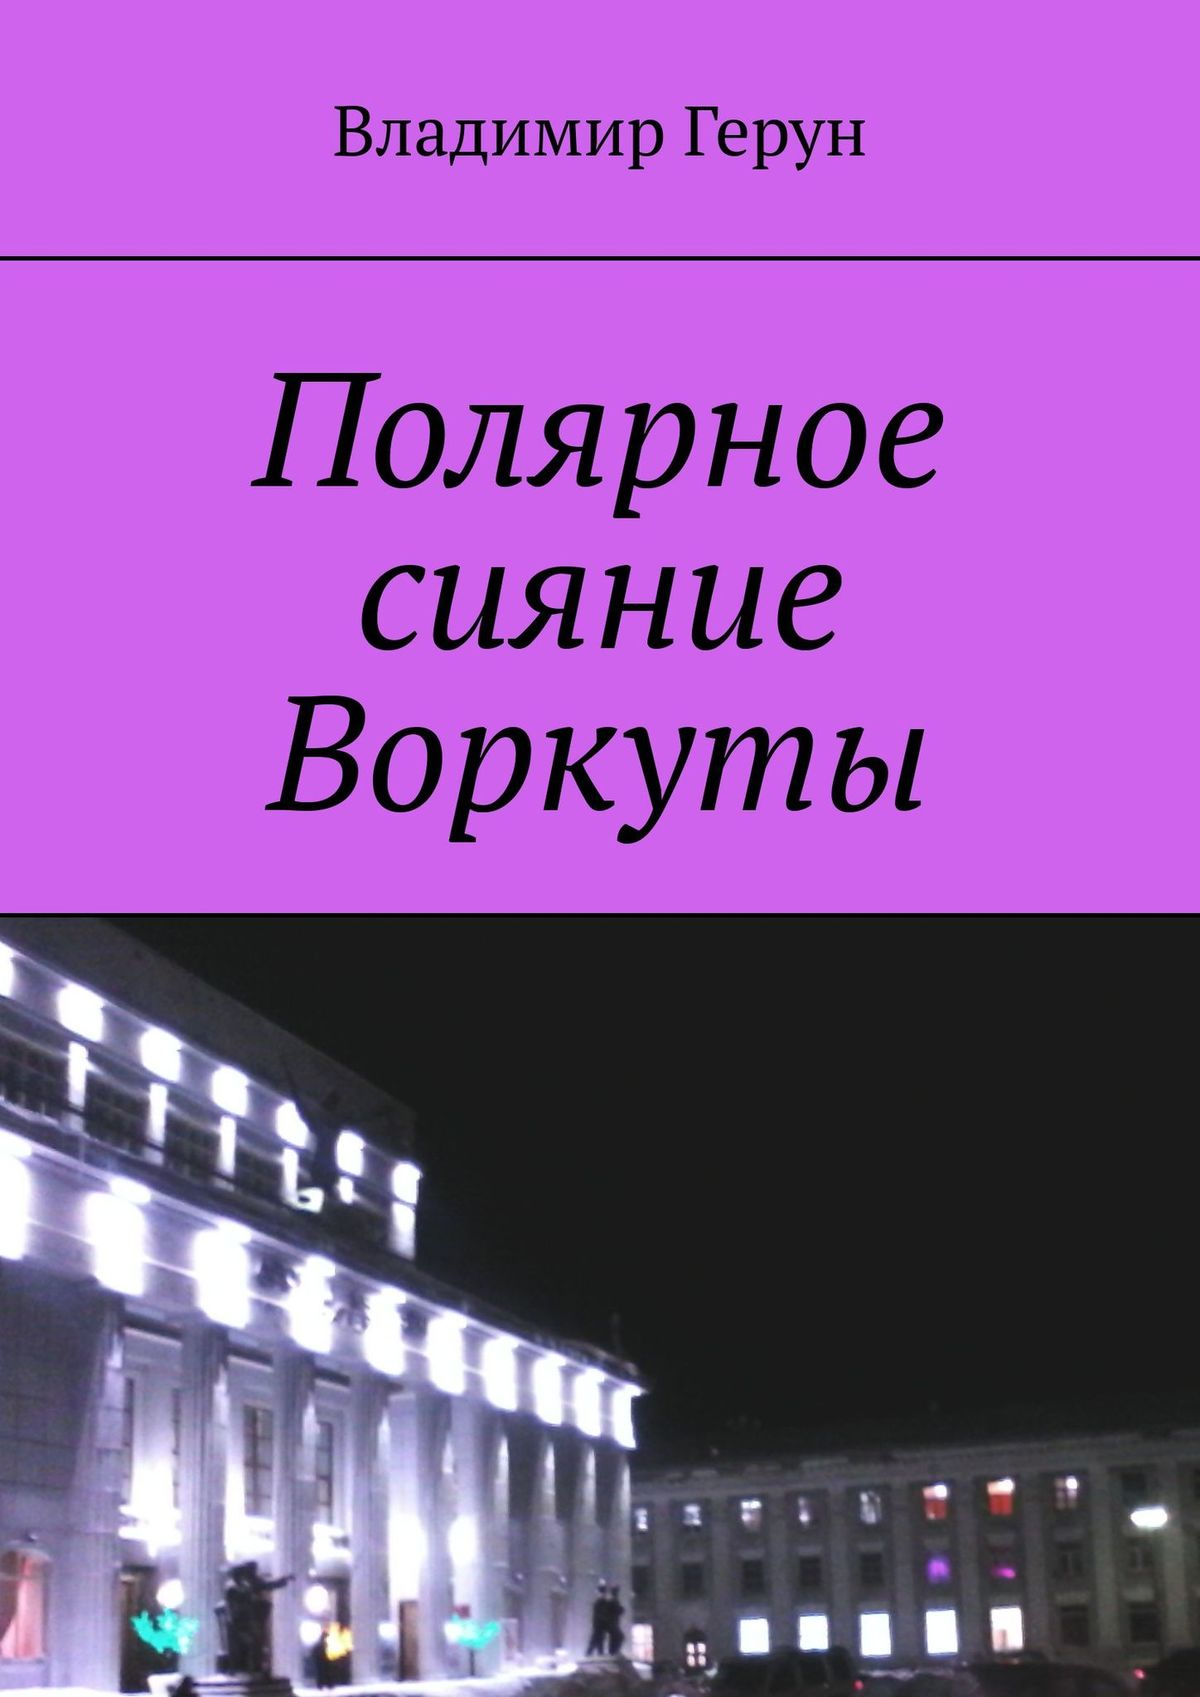 Владимир Герун Полярное сияние Воркуты placement and evaluation package interchange third edition passages second edition with audio cds